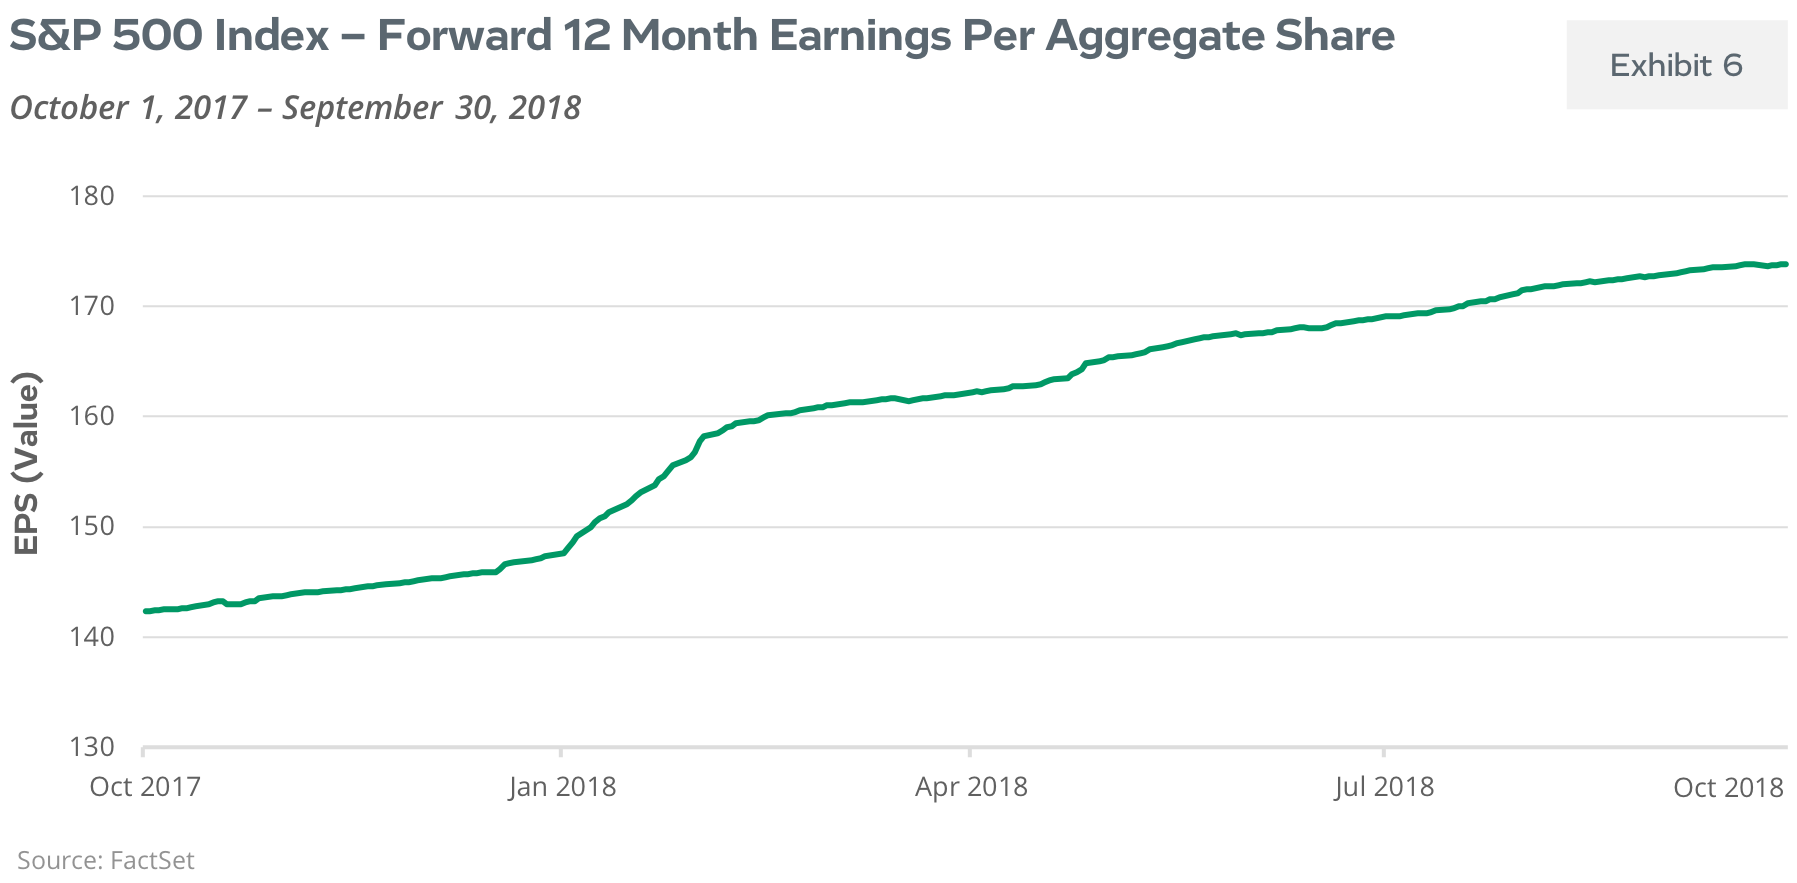 S&P 500 Index - Forward 12 Month Earnings Per Aggregate Share